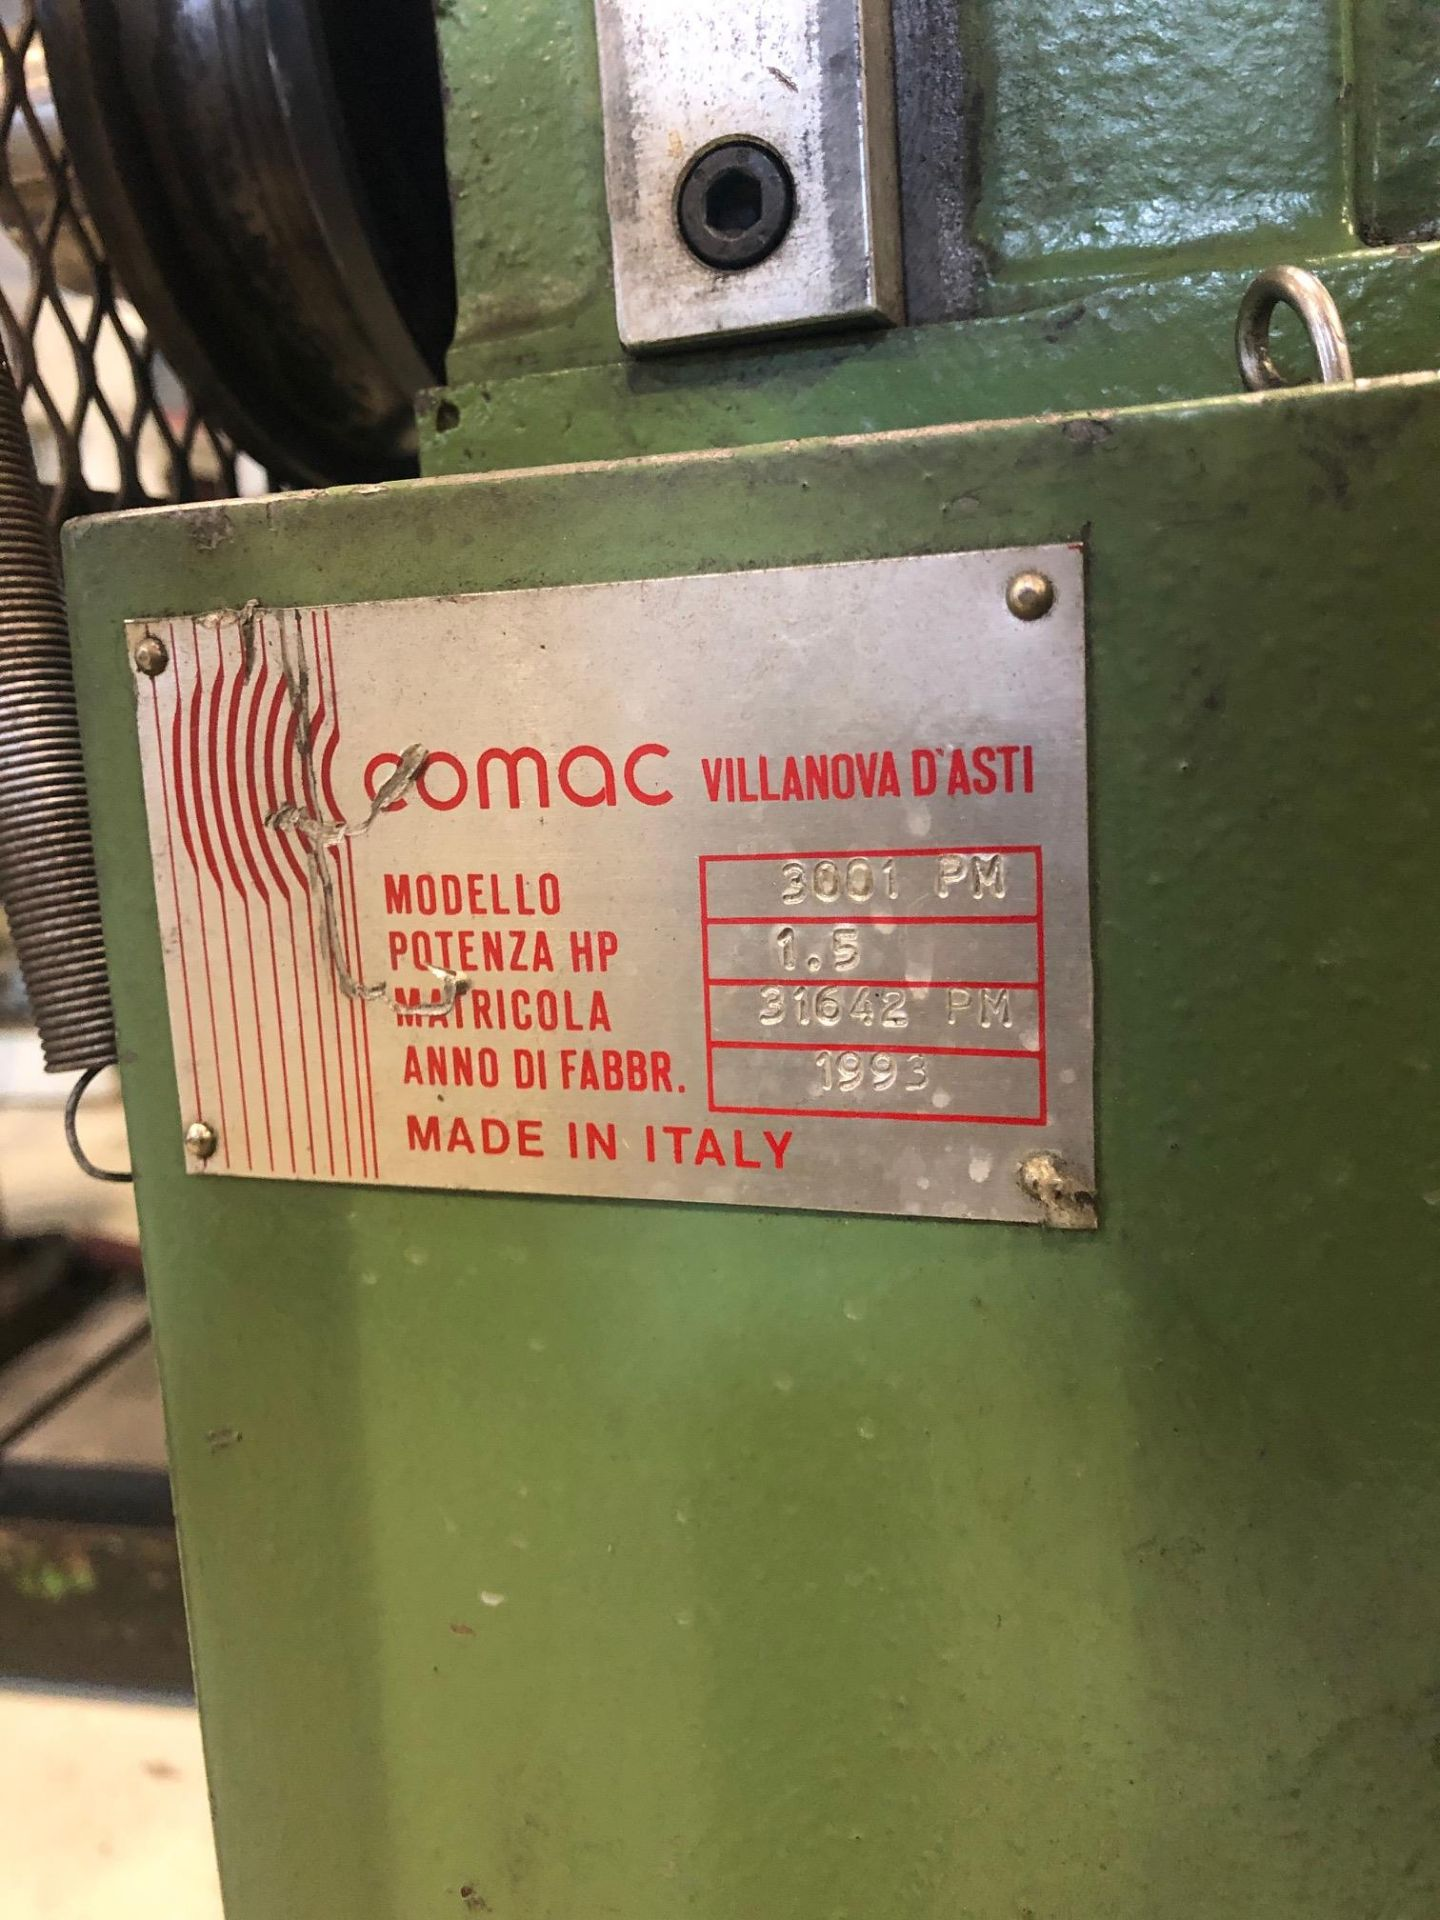 """COMAC ANGLE ROLL, MODEL 3001-PM, S/N 31642PM, 1 3/8""""-5/32"""" - Image 4 of 4"""